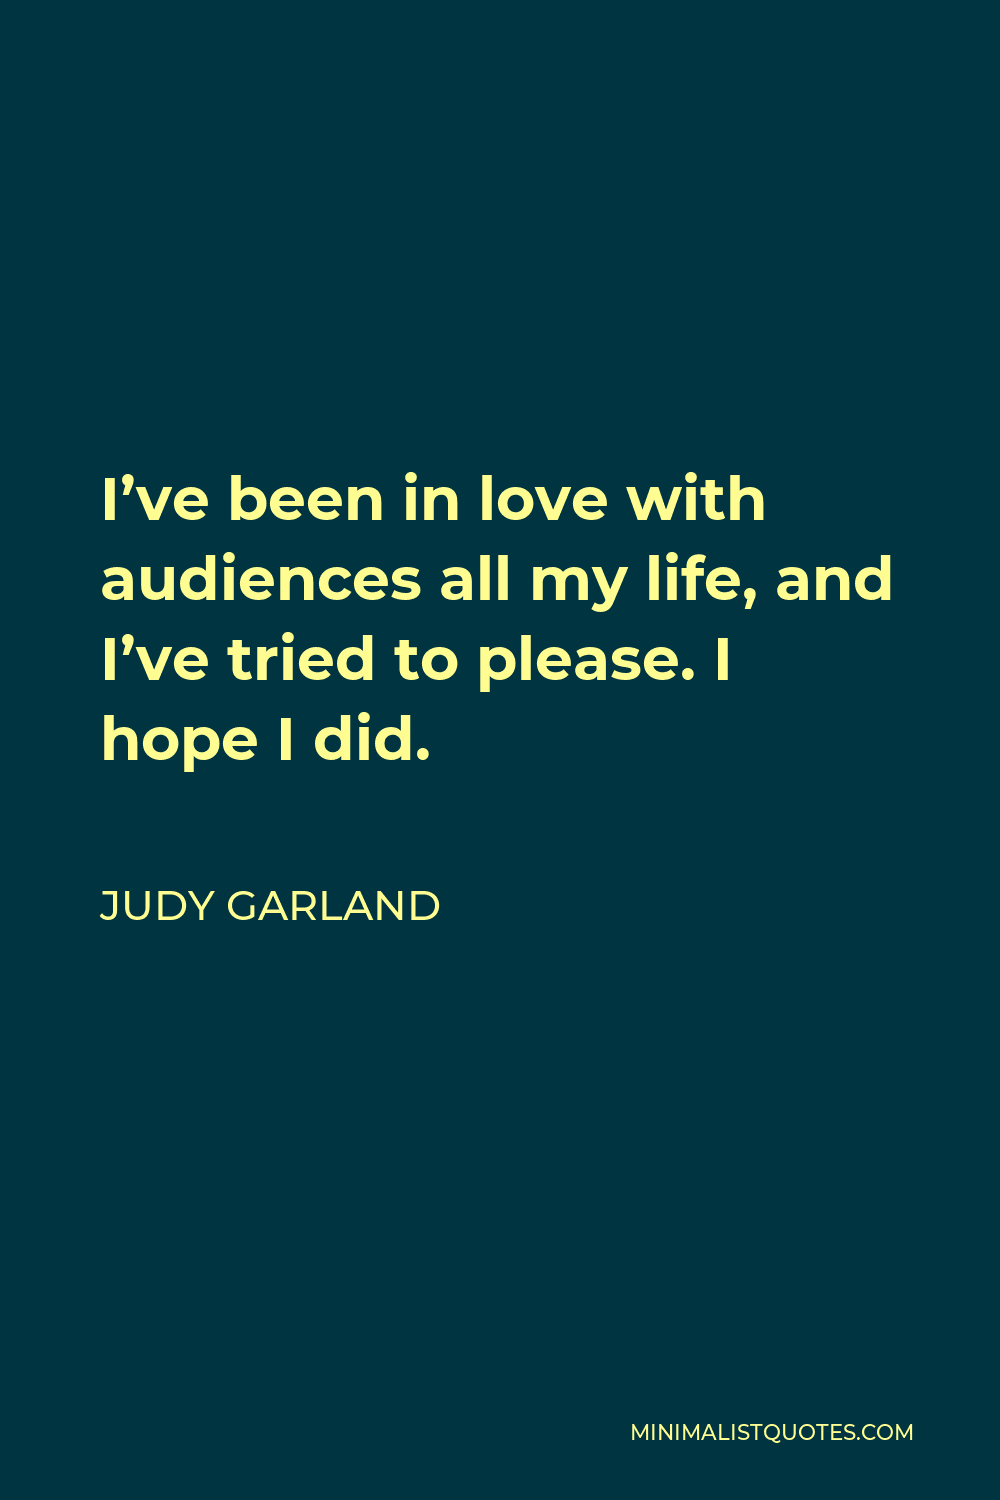 Judy Garland Quote - I've been in love with audiences all my life, and I've tried to please. I hope I did.